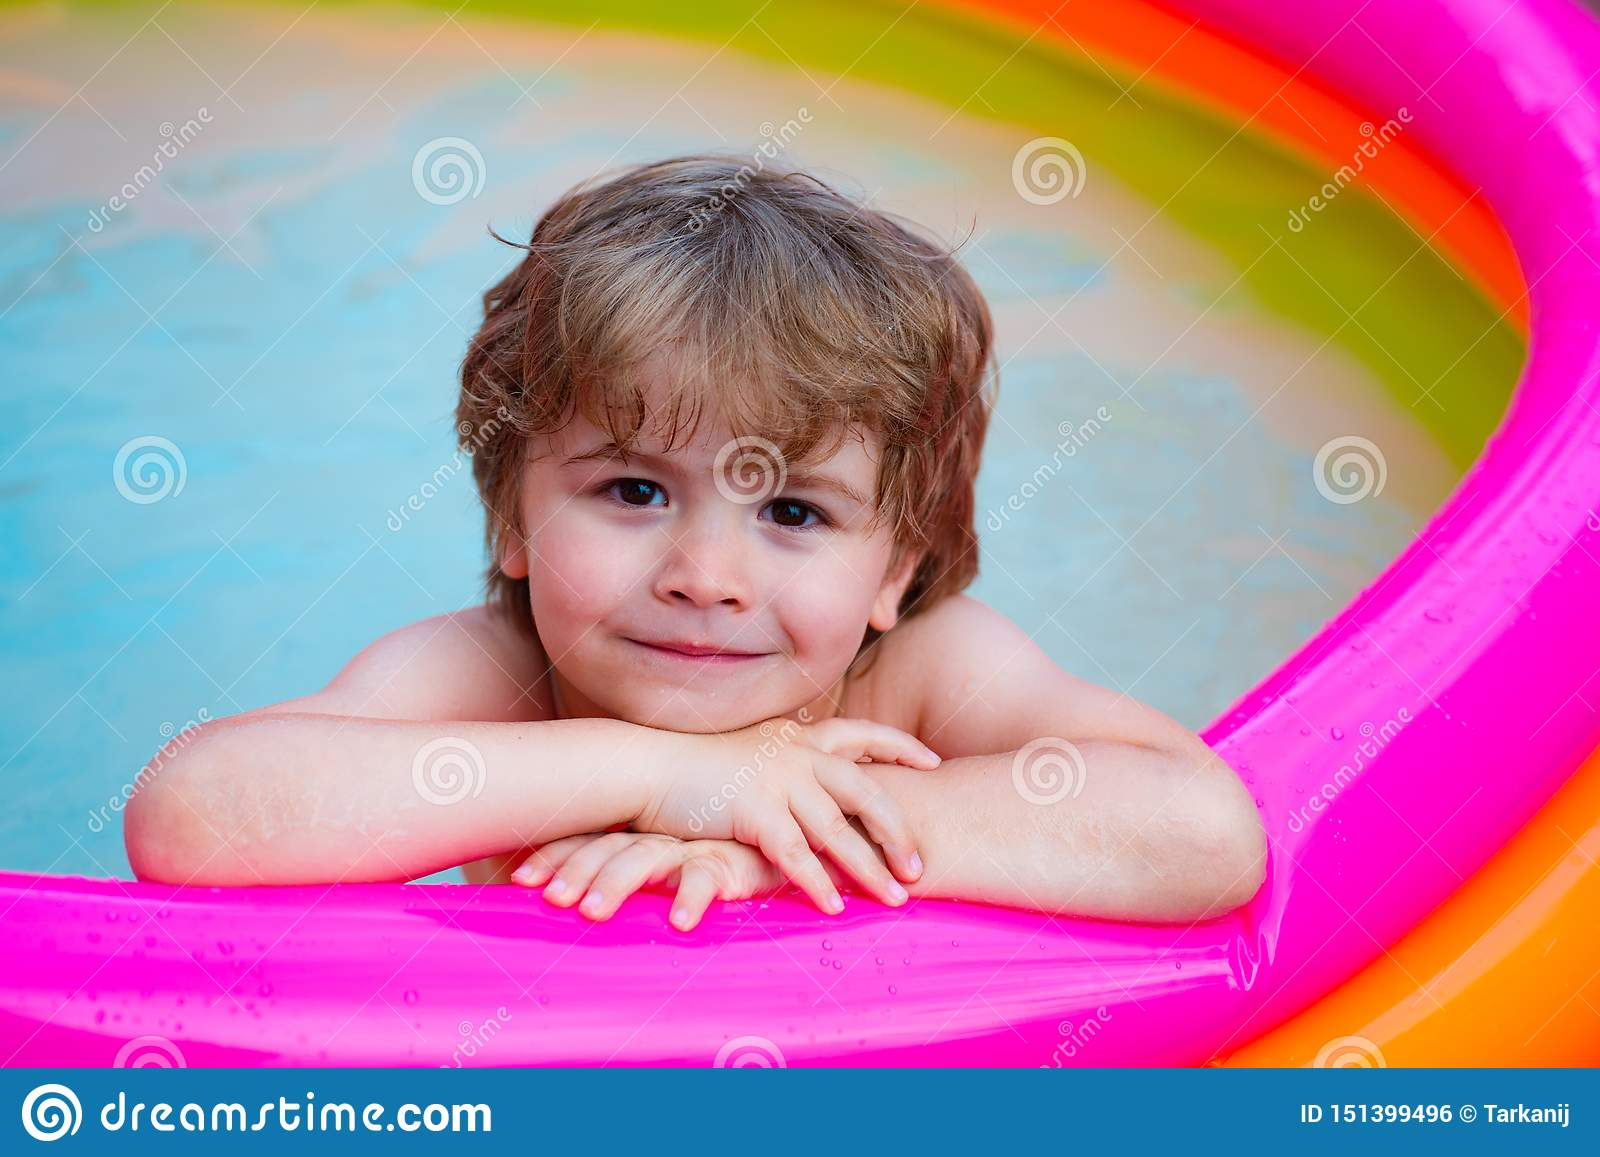 Summer relaxation in the pool. A child lies and relax in a home pool with a smile. Summer rest. Vacations. Cute baby